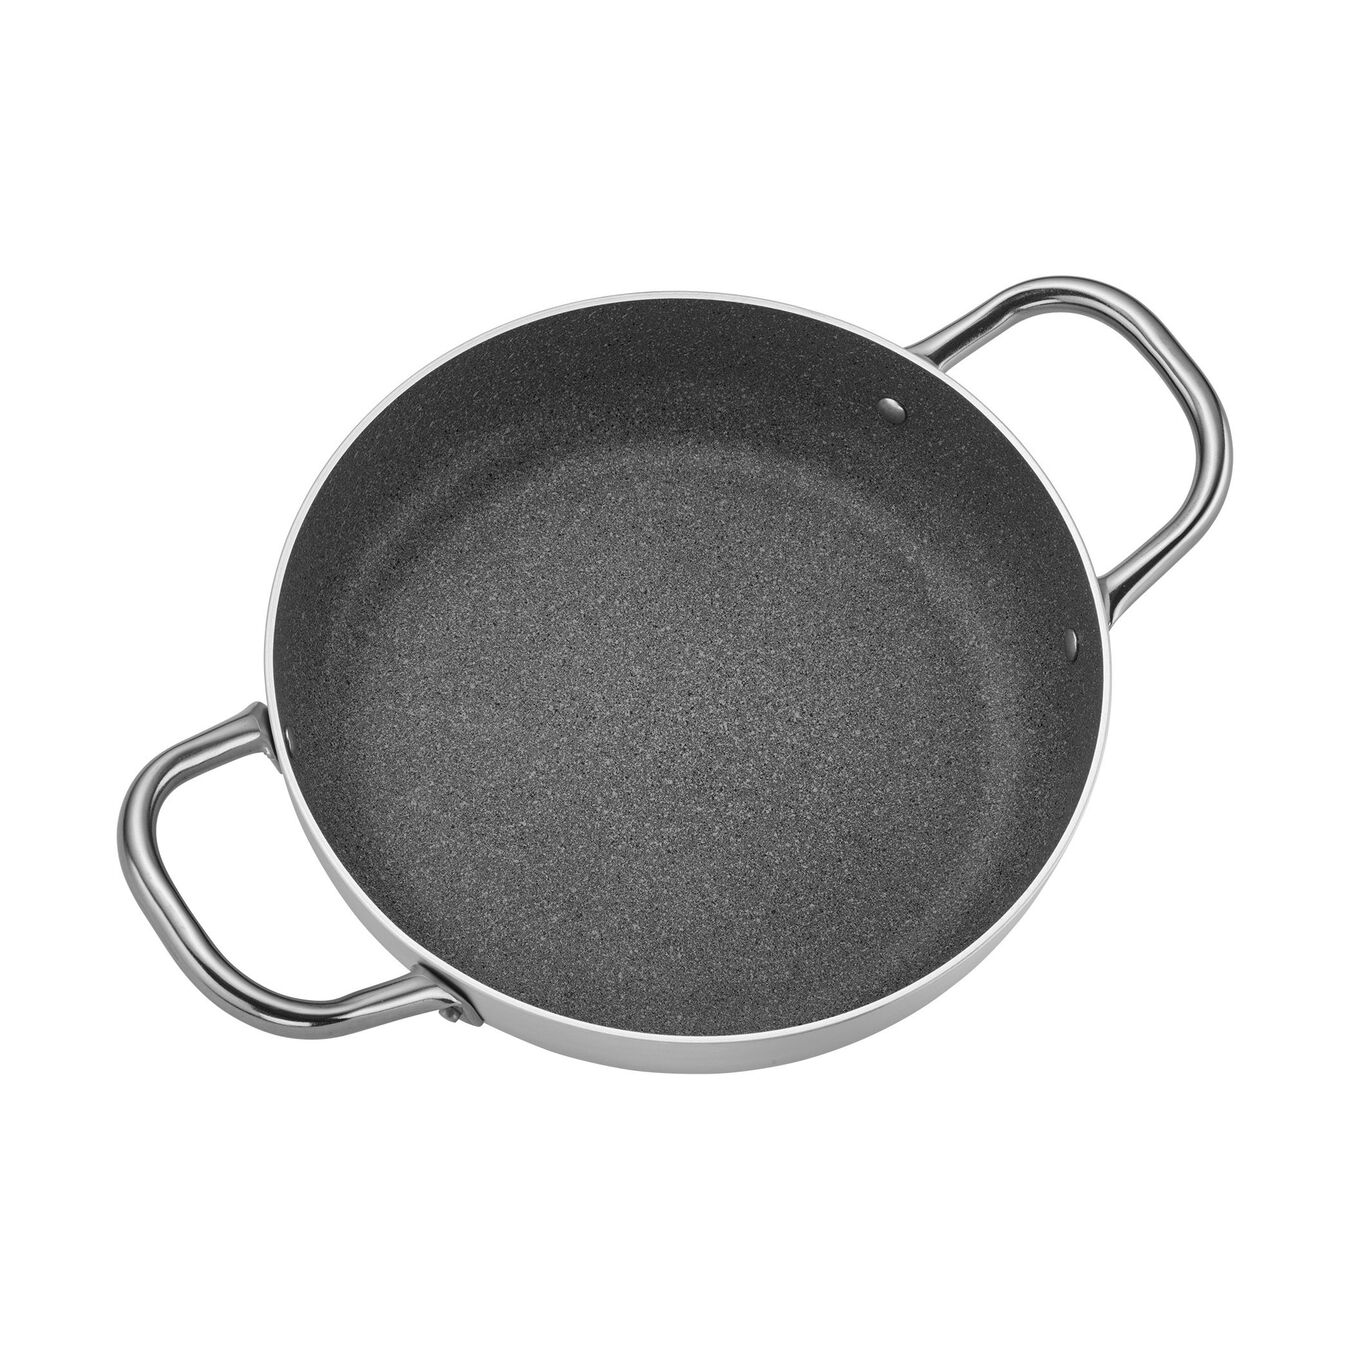 11-inch Braiser Without Lid,,large 2